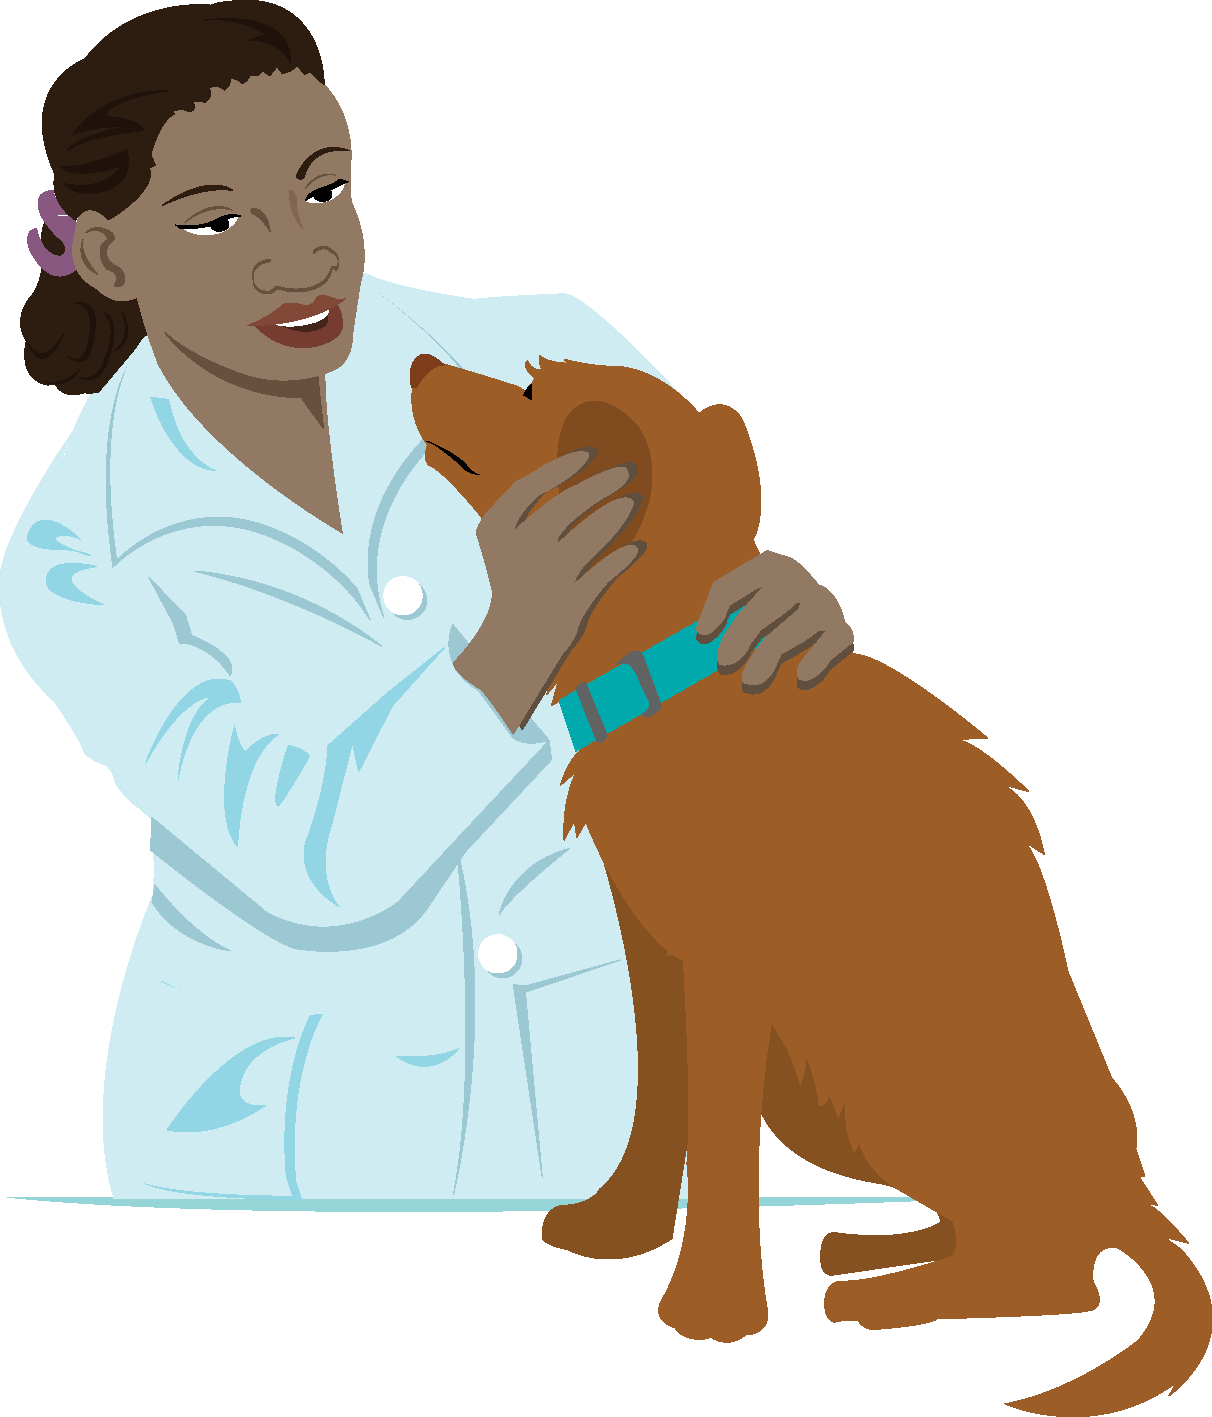 dog lady people pets veterinarian clipart - Vet Assistant PNG